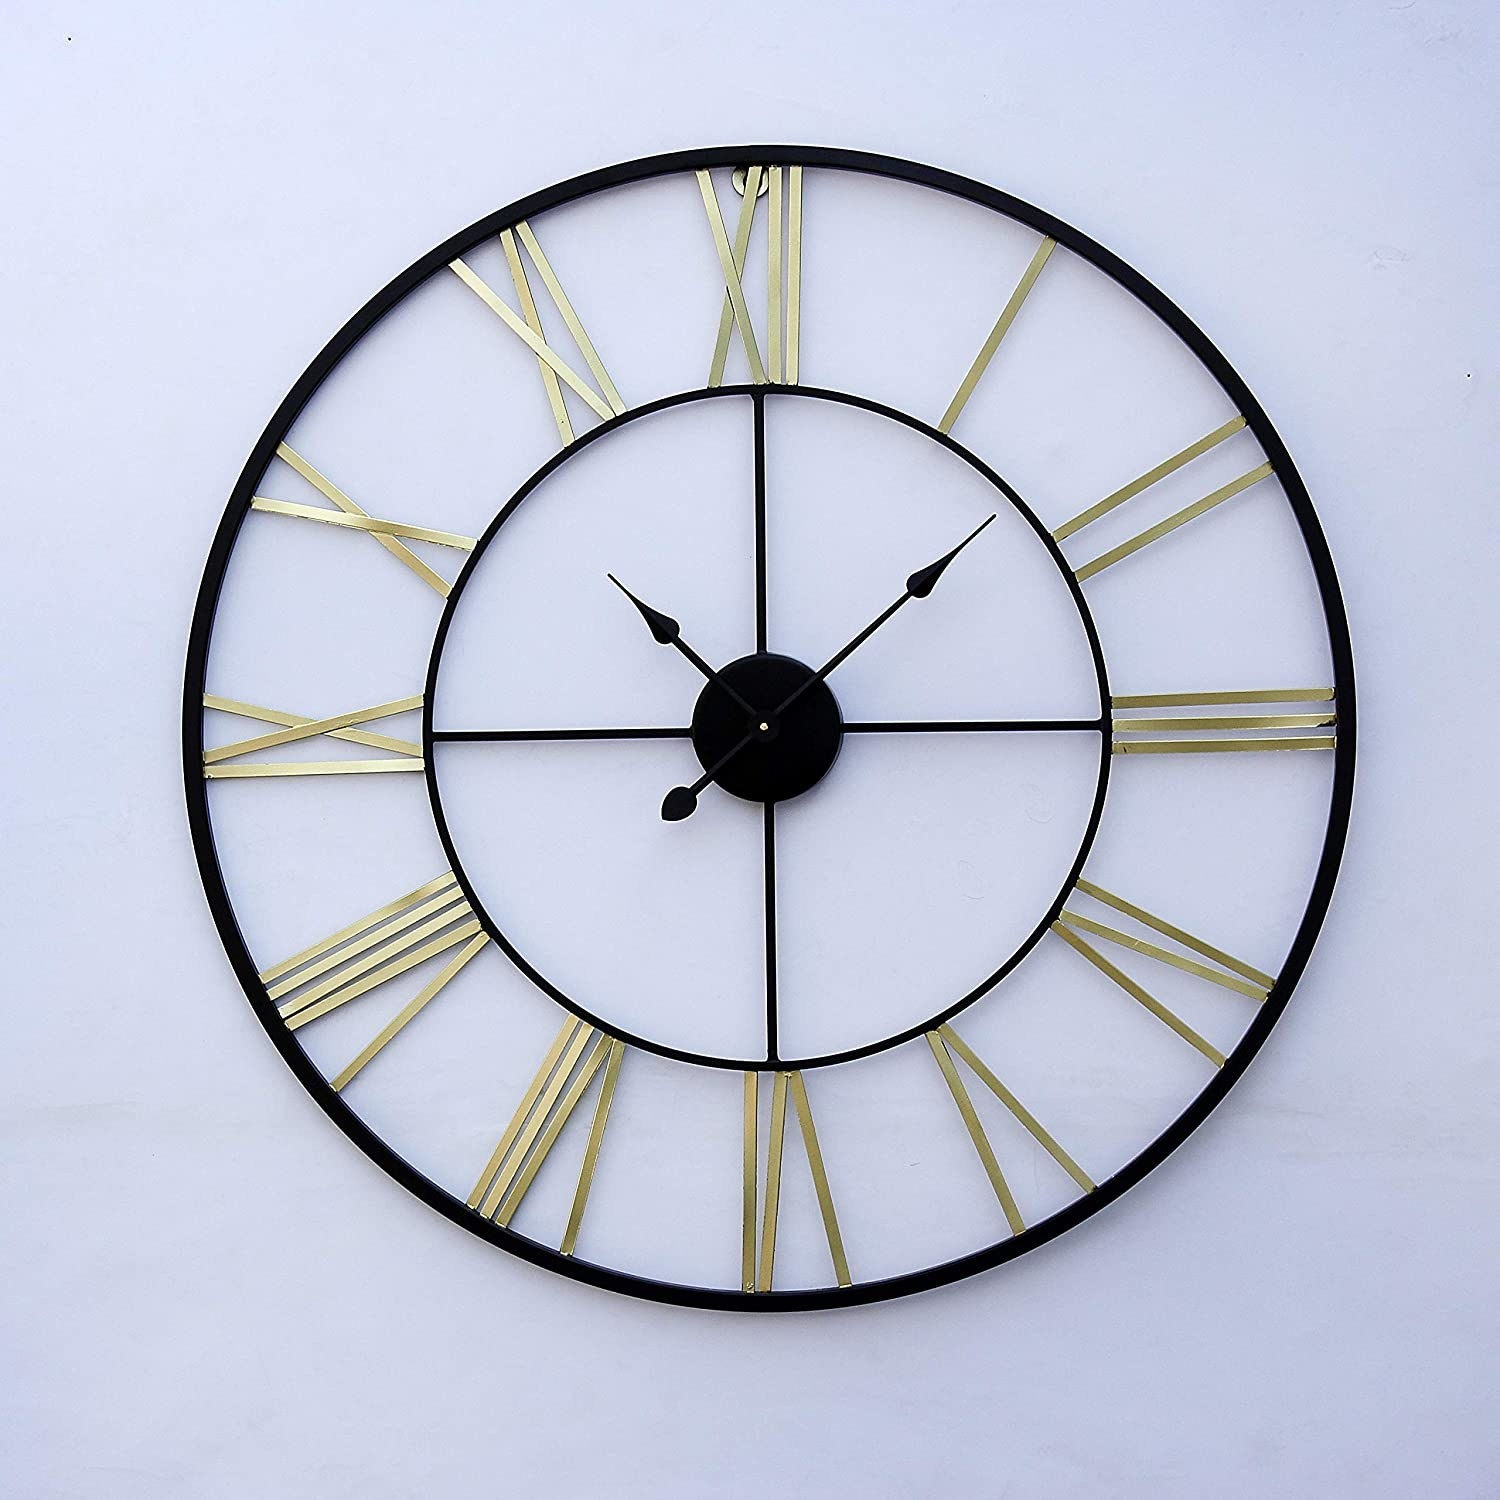 A large metal clock with black and gold accents and no base